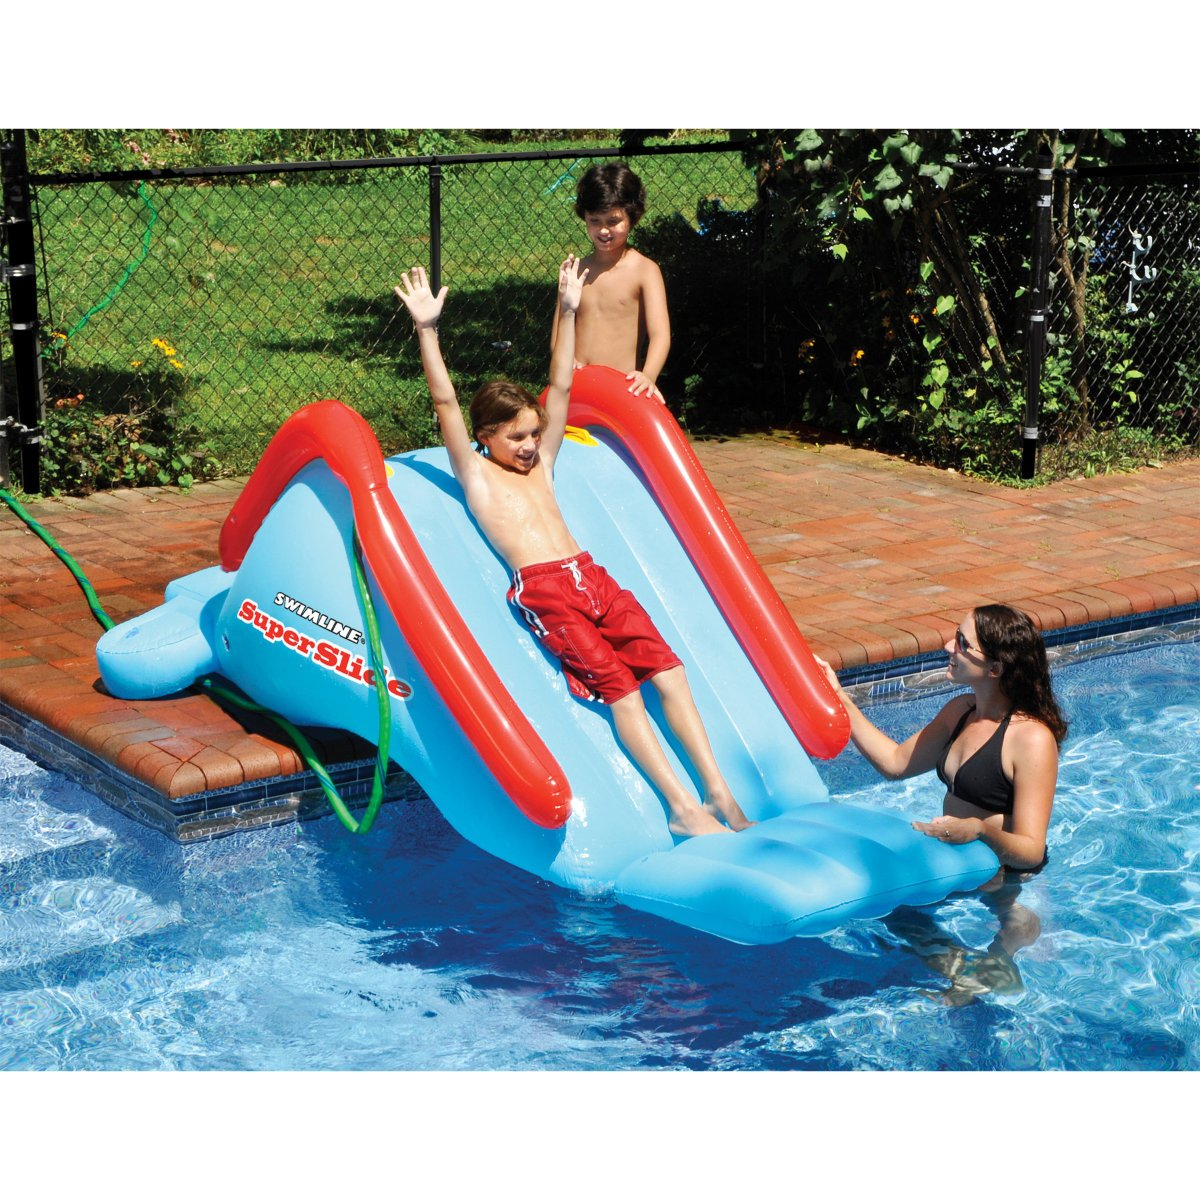 amazoncom superslide inflatable in ground pool water slide by swimline toys games - Diy Above Ground Pool Slide